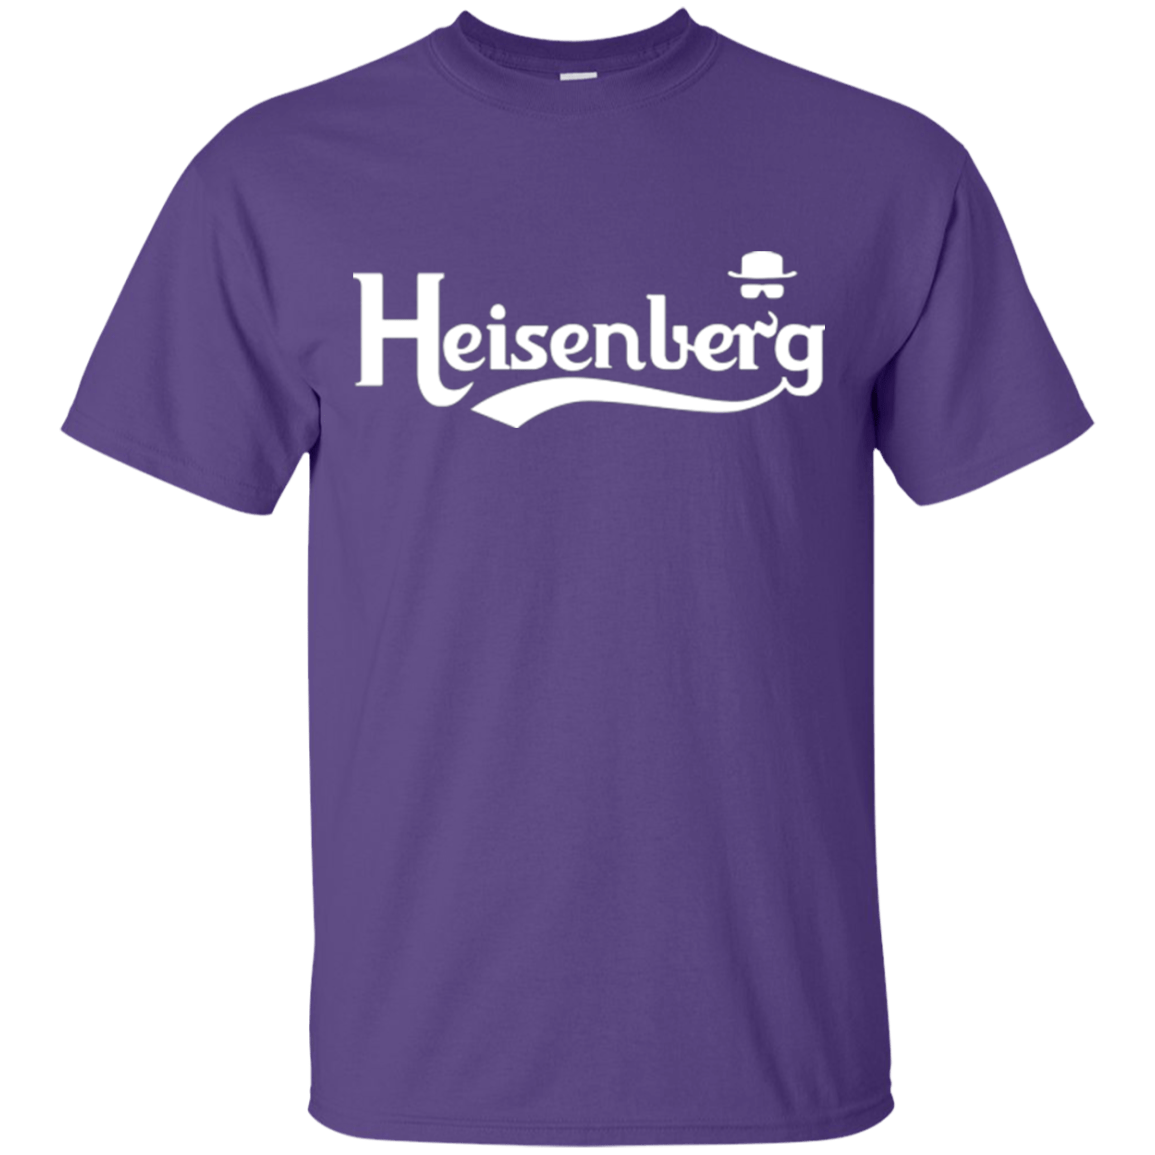 T-Shirts Purple / Small Heisenberg (1) T-Shirt